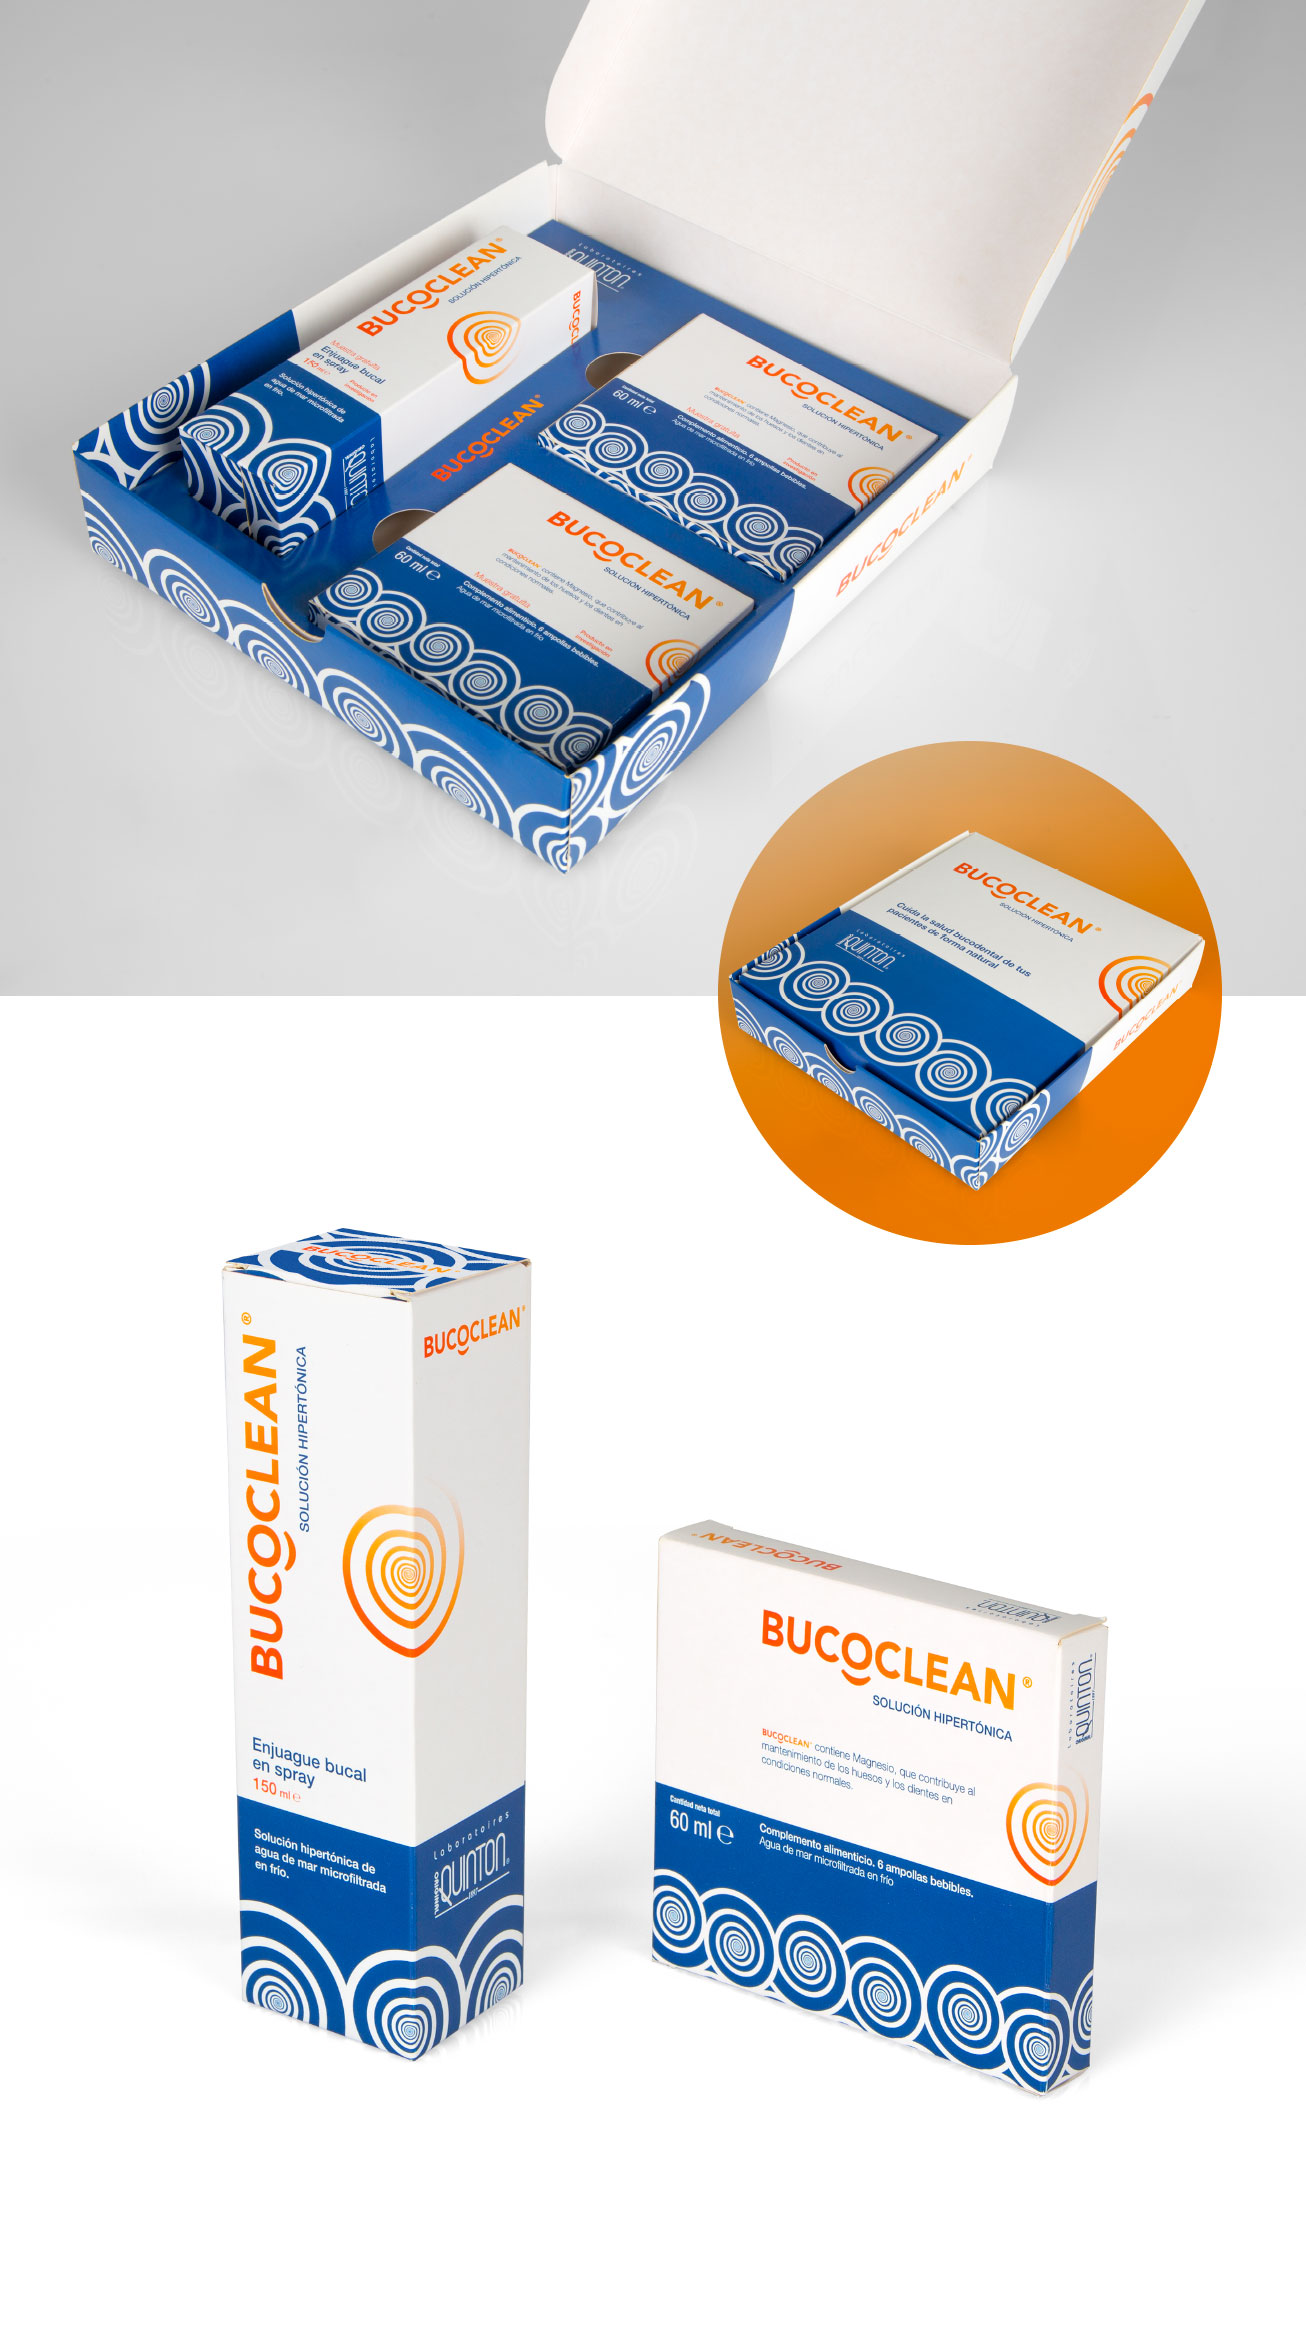 Branding y packaging Bucoclean - Laboratorios Quinton